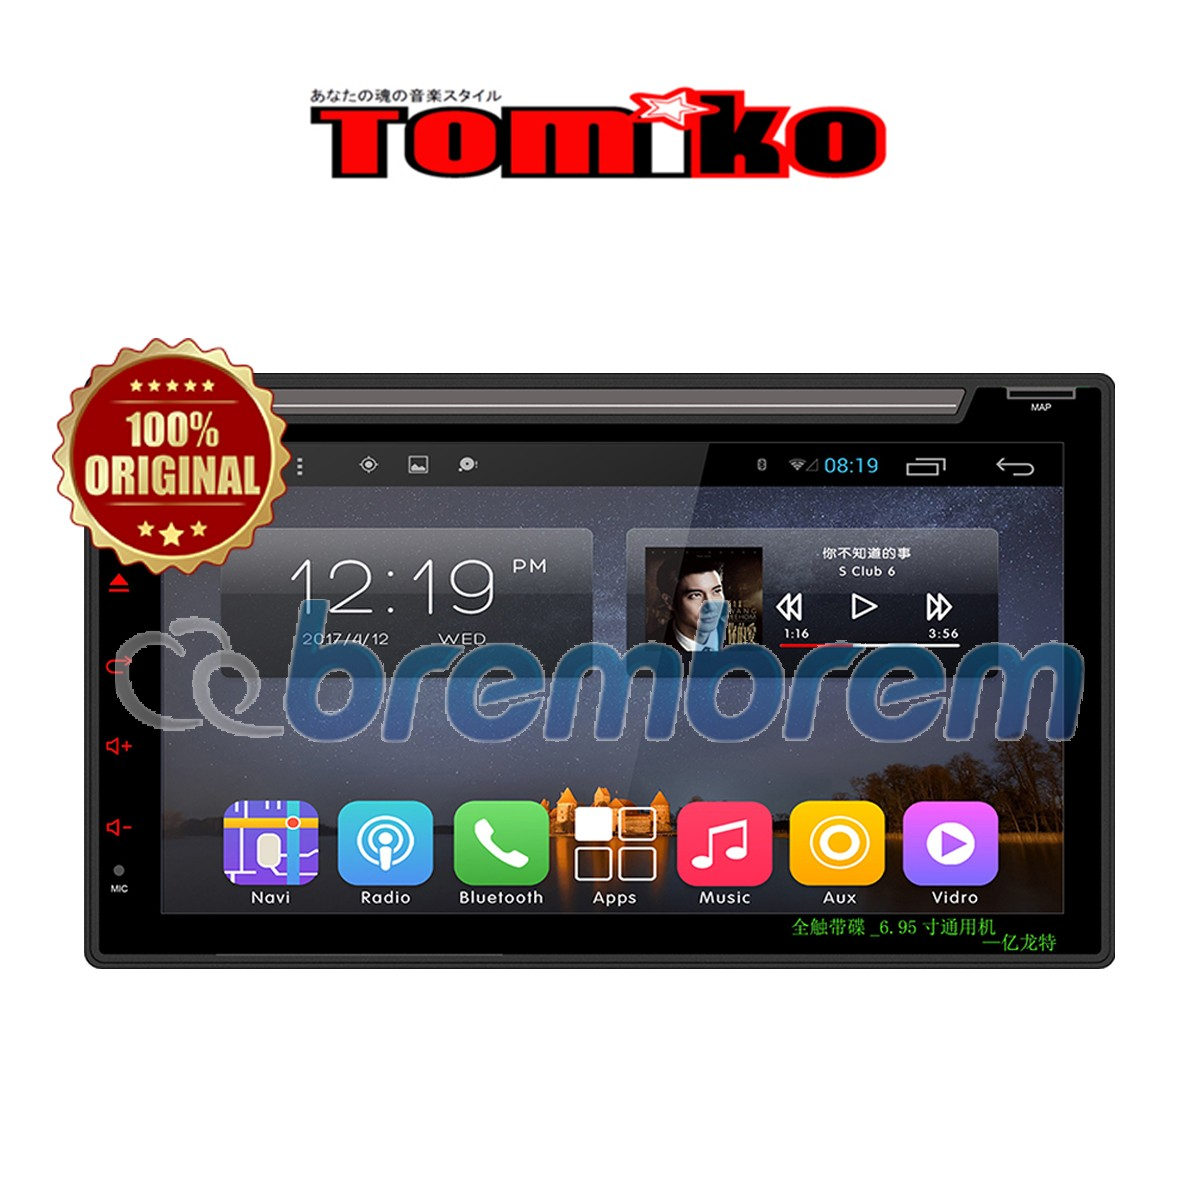 TOMIKO ANDROID 4G LTE 10 INCH DD 1055 D - HEADUNIT 2 DIN